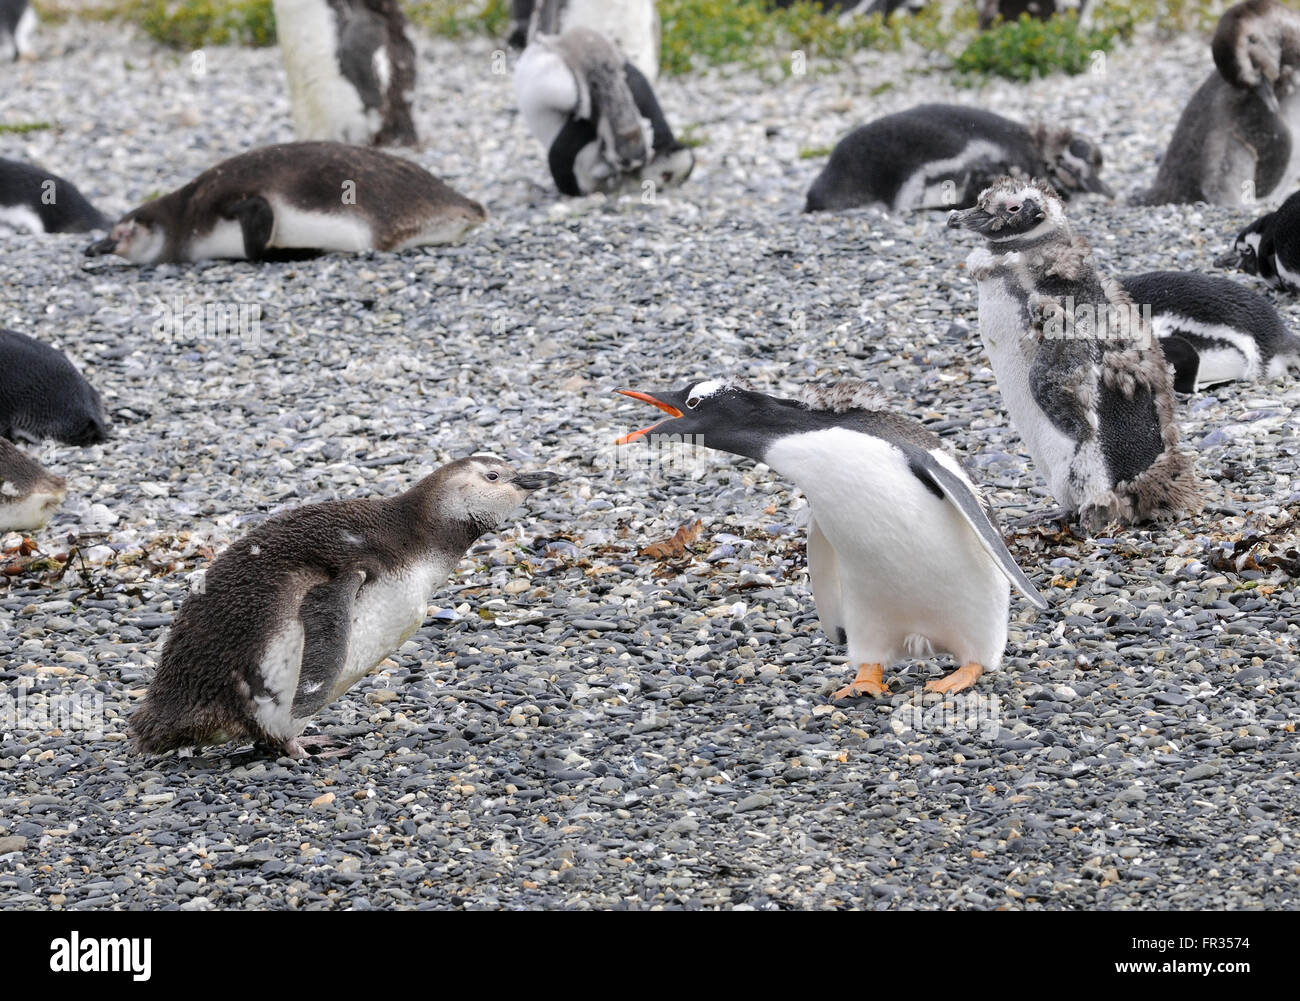 An adult Gentoo Pegnguin (Pygoscelis papua) appears to be reprimanding a young Magellanic Penguin (Spheniscus magellanicus) - Stock Image